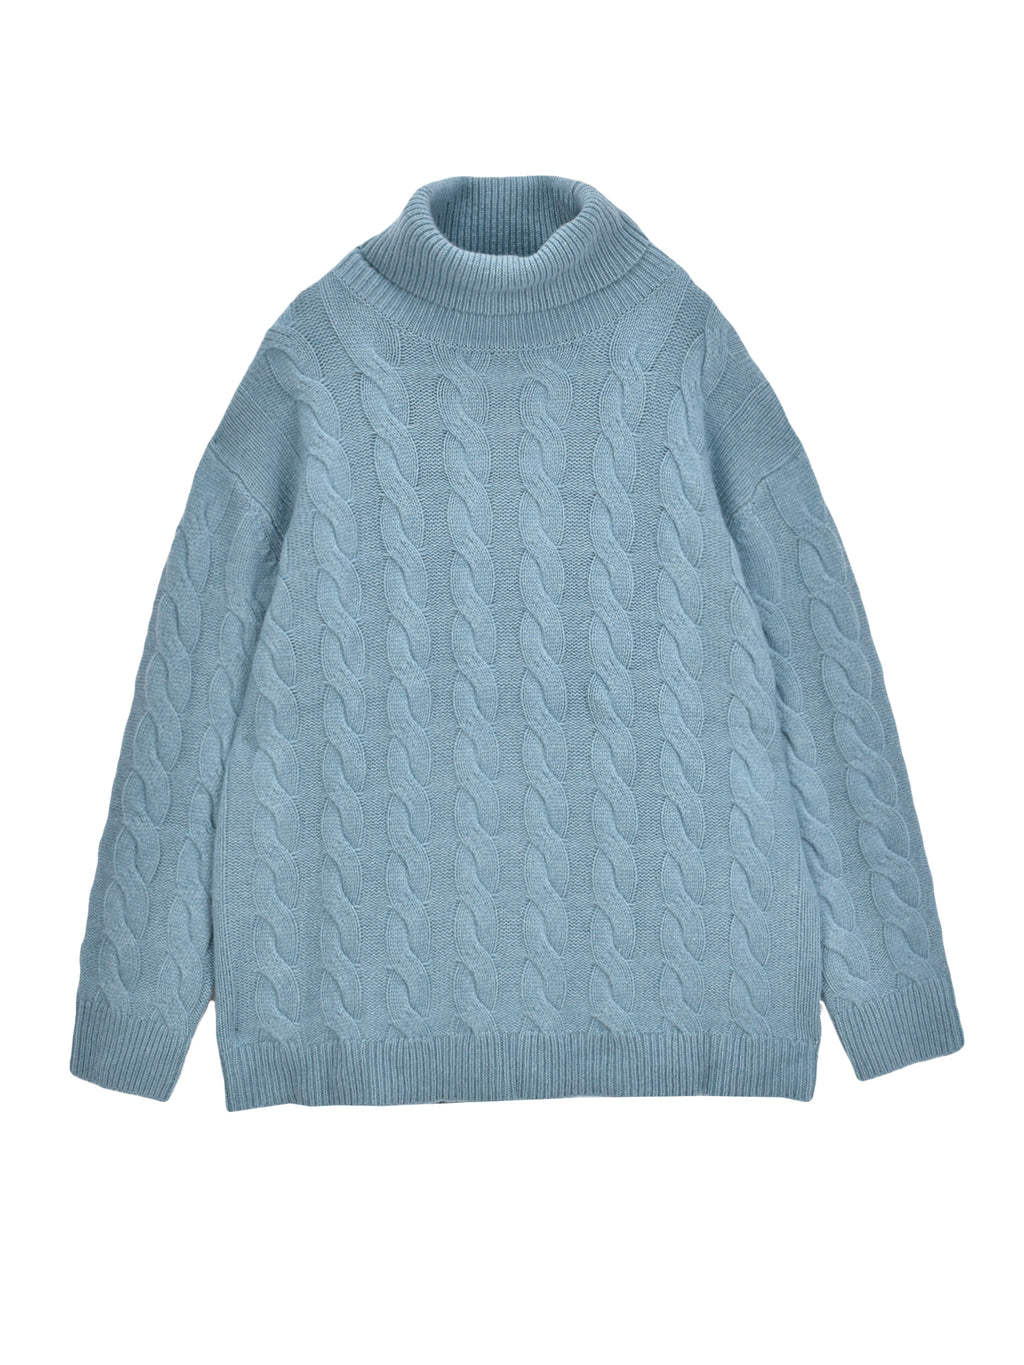 Classic Cable Knit Tunic_Steel Blue